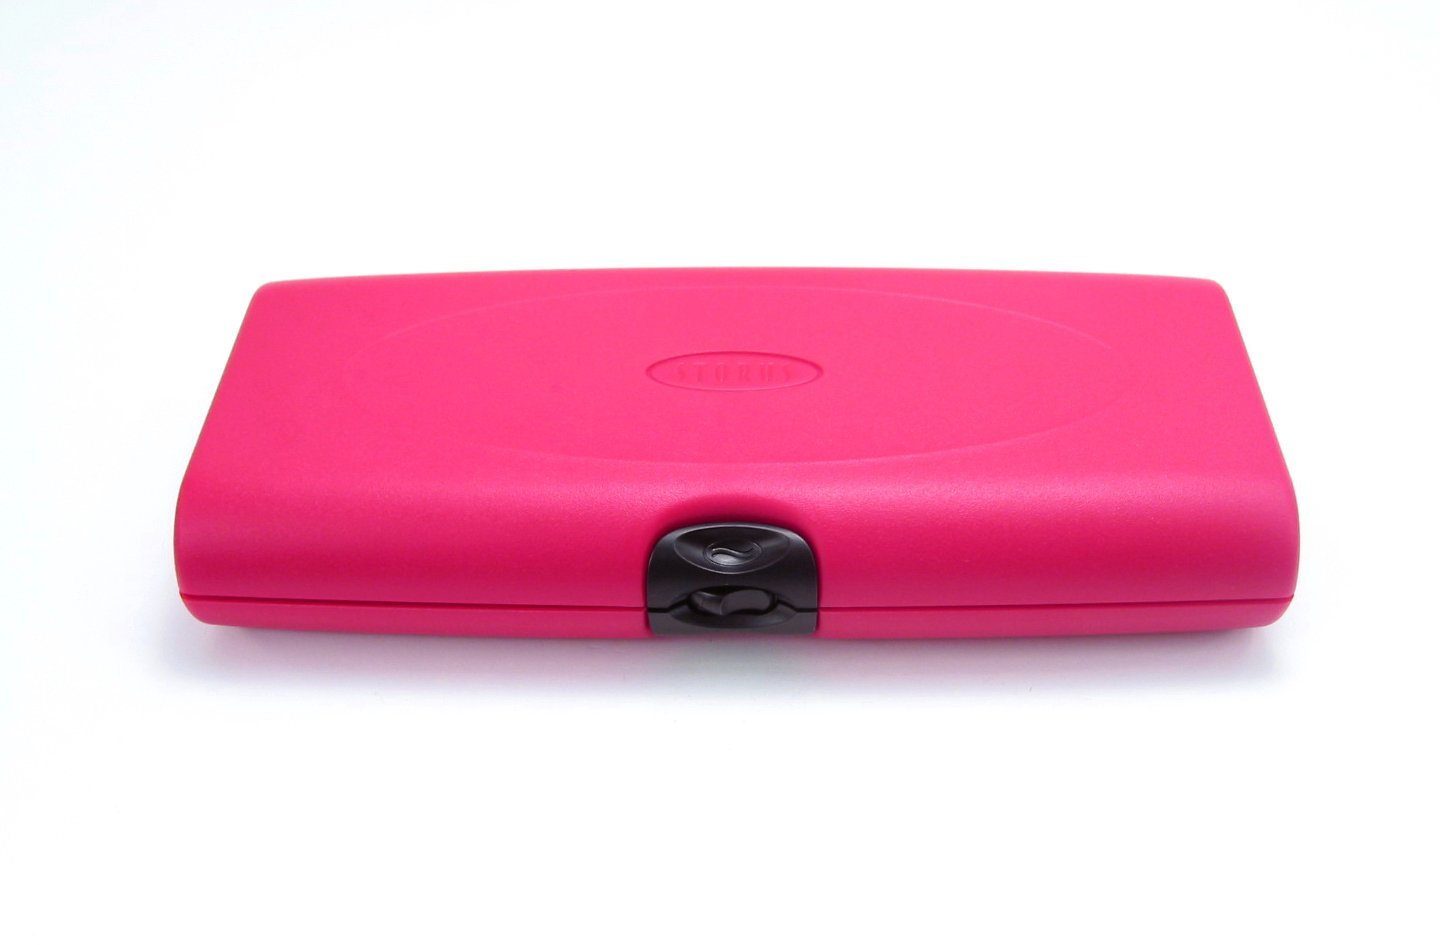 Storus Smart Jewelry Case-Tangle Free, Double-Sided Anti Tarnish Jewelry Case-Made of Advanced Shock Resistant Plastic-Pink Color-Automated Opening System-Measures 9.5'' Long x 4'' Wide x 1.5'' Deep